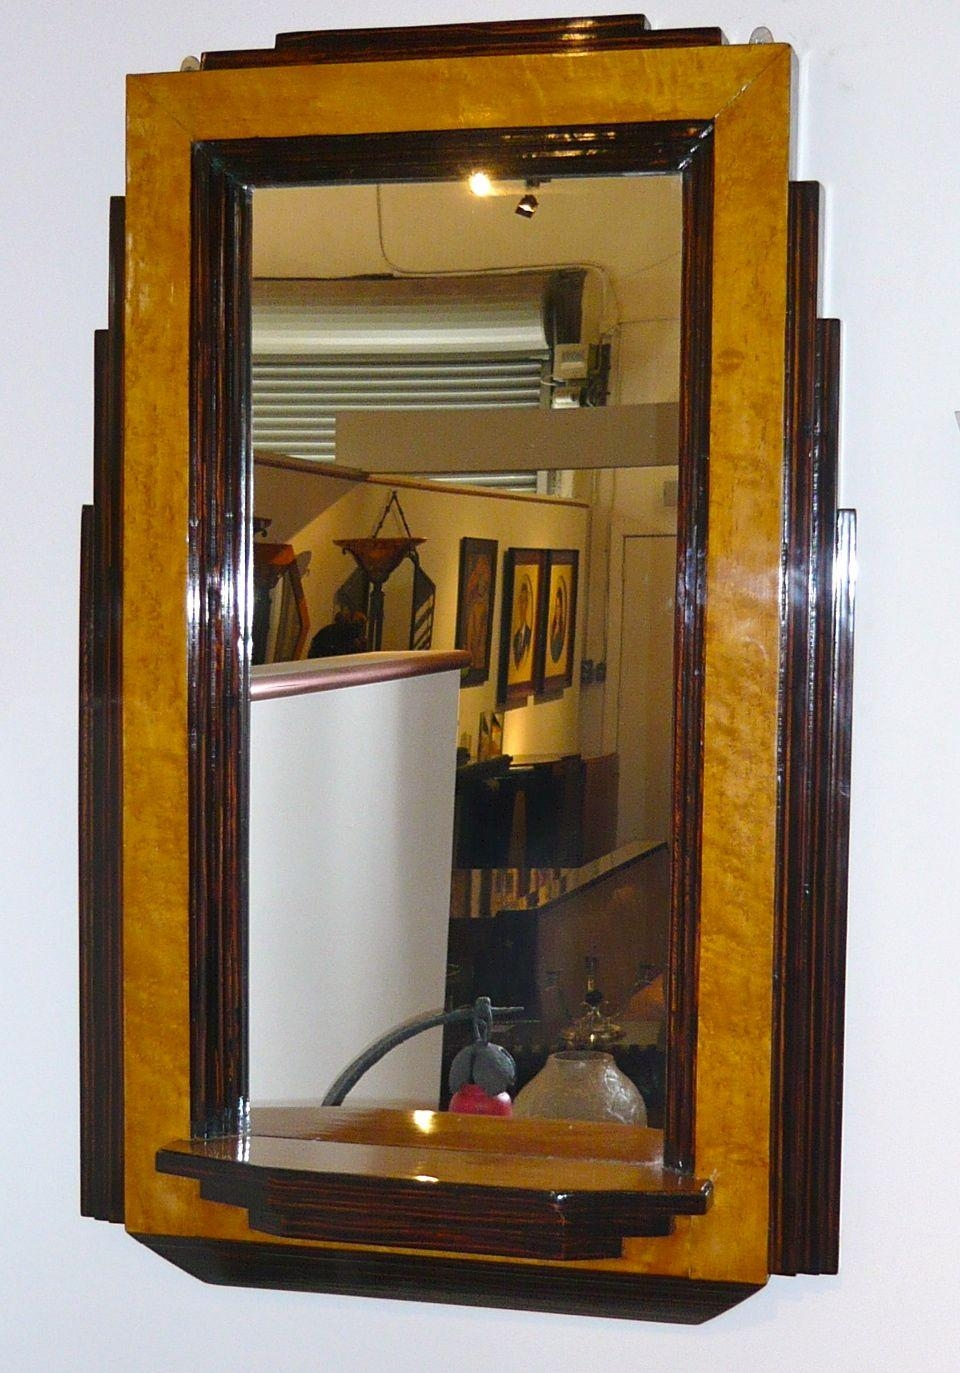 Art Deco Bedroom Furniture For Sale | Art Deco Collection Intended For Large Art Deco Mirror (Image 3 of 20)